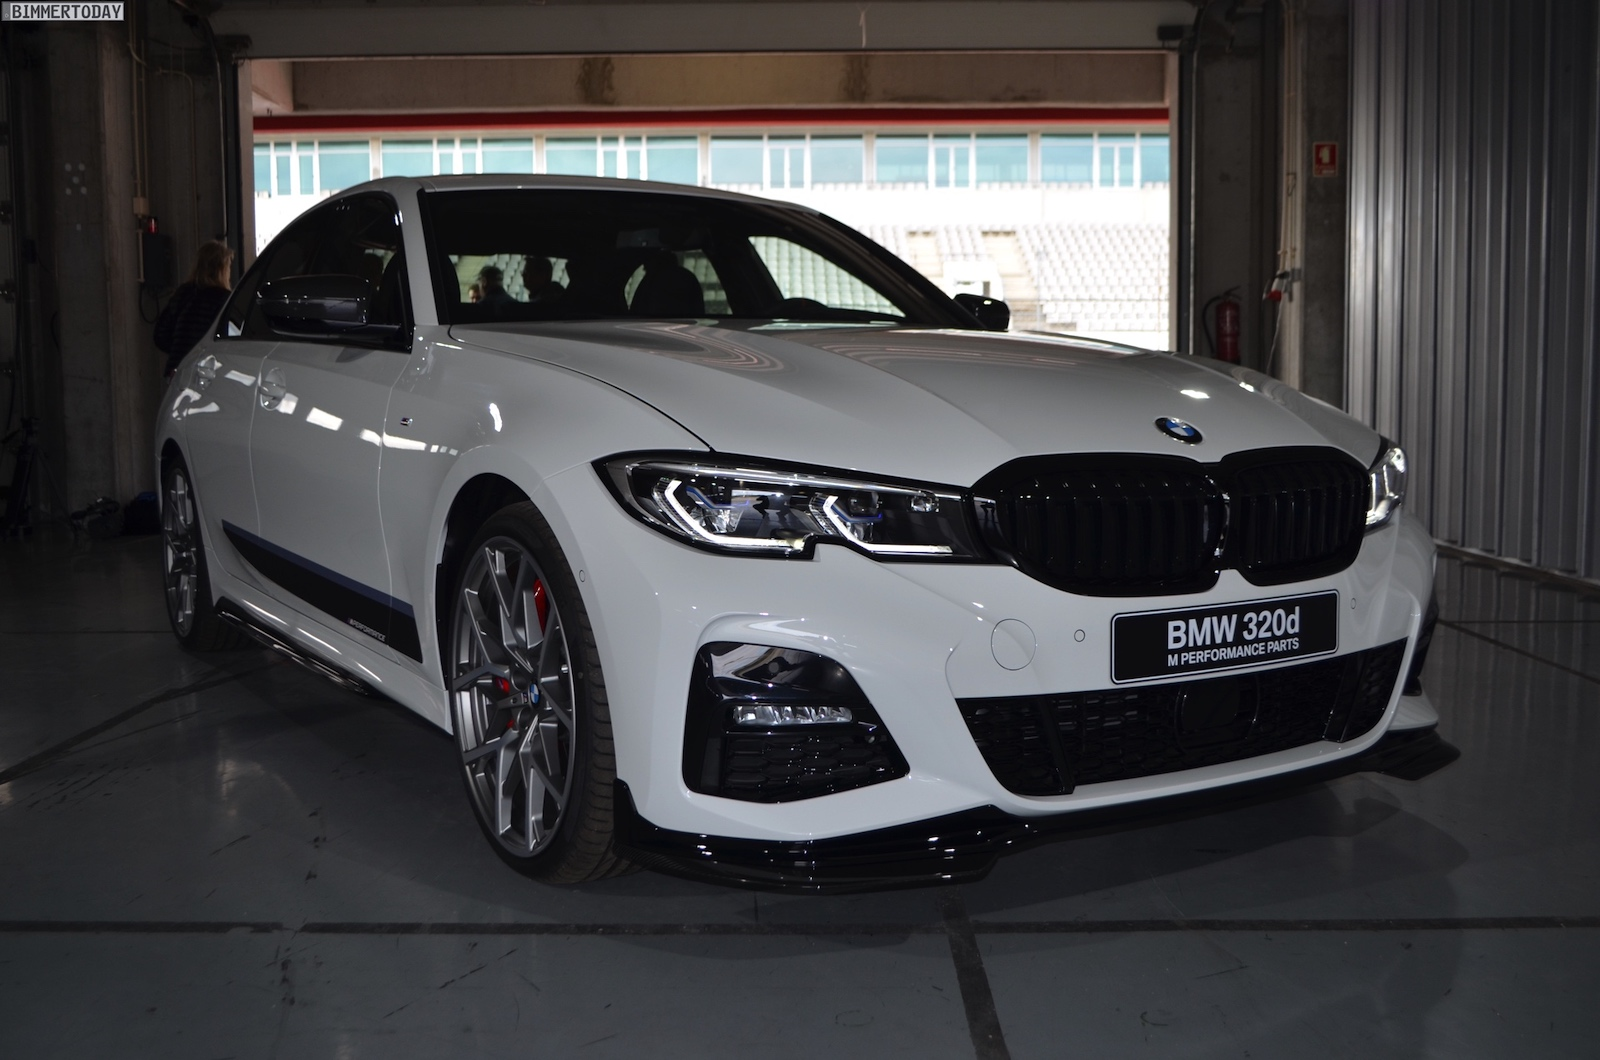 Real Life Pics M Performance Parts On G20 3 Series G20 Bmw